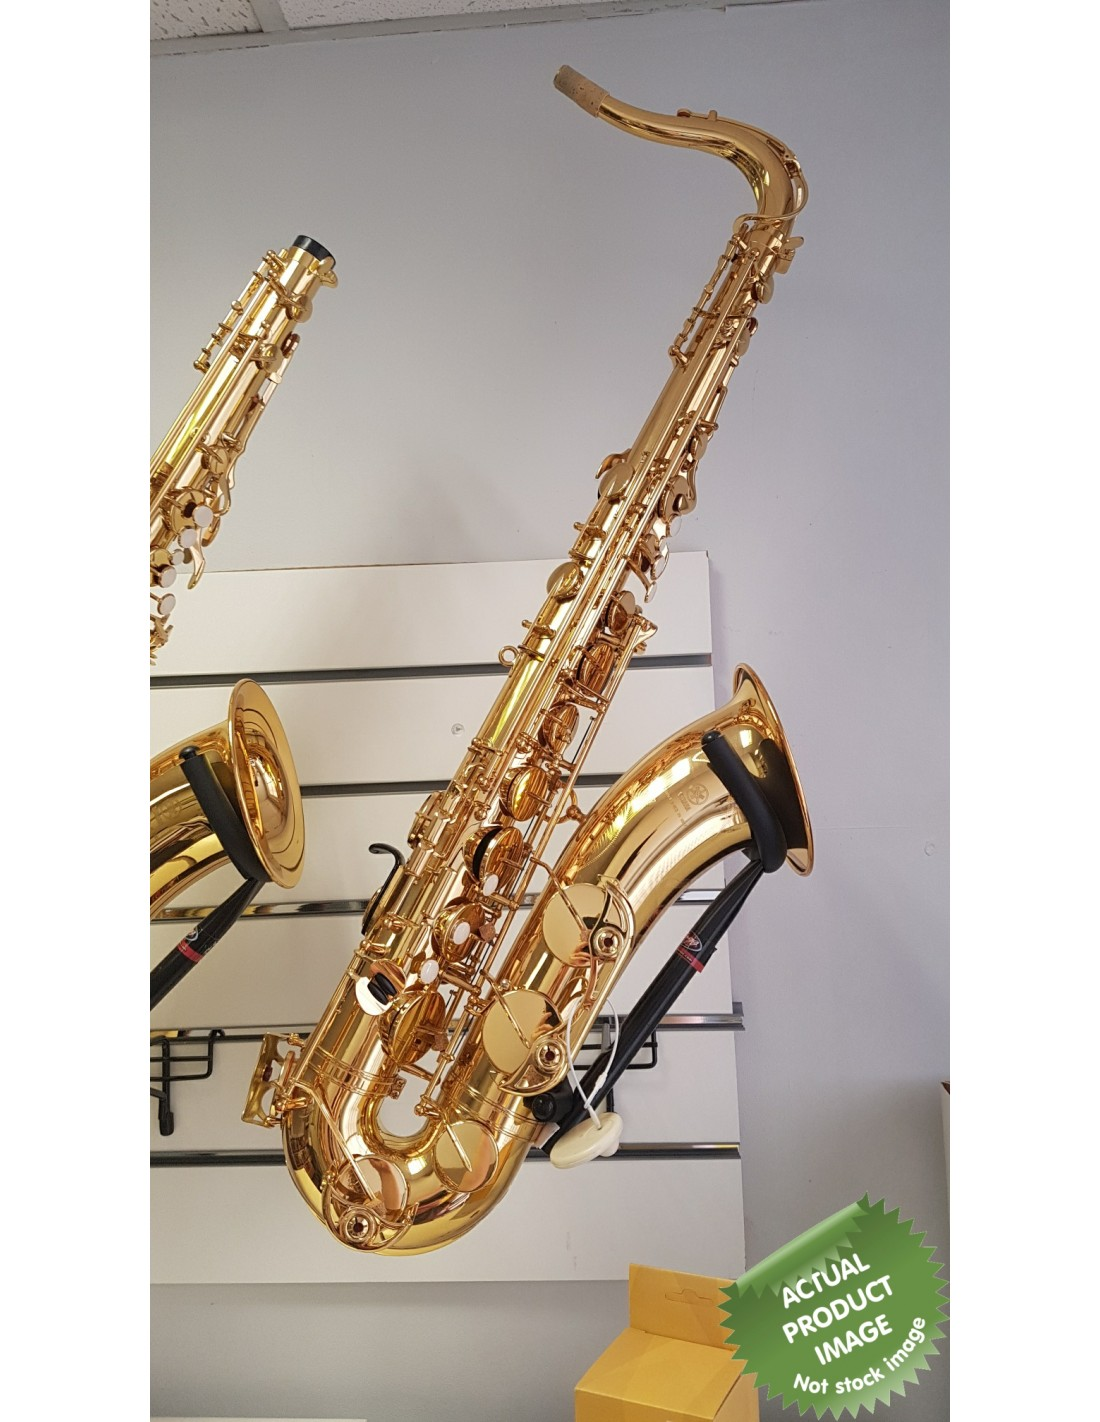 yamaha yts 62 tenor saxophone outfit re sale great. Black Bedroom Furniture Sets. Home Design Ideas